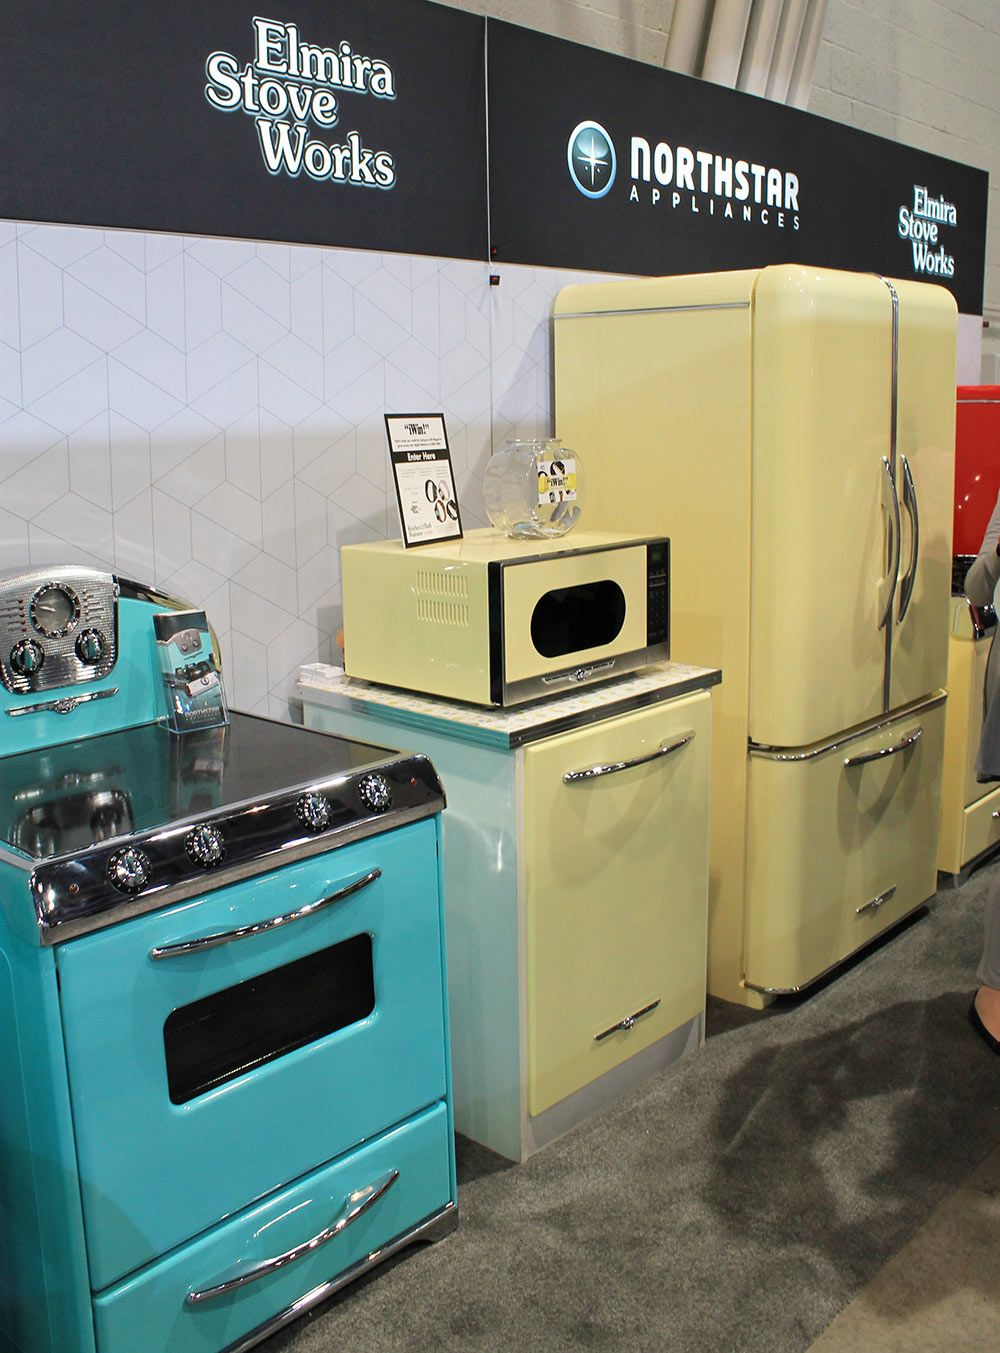 Awesome Yet Another Bright And Colorful Spot At KBIS 2016 Was The Northstar  Appliances Display From Elmira Stove Works. In Fact, Even Though The Booth  Was Tucked ...